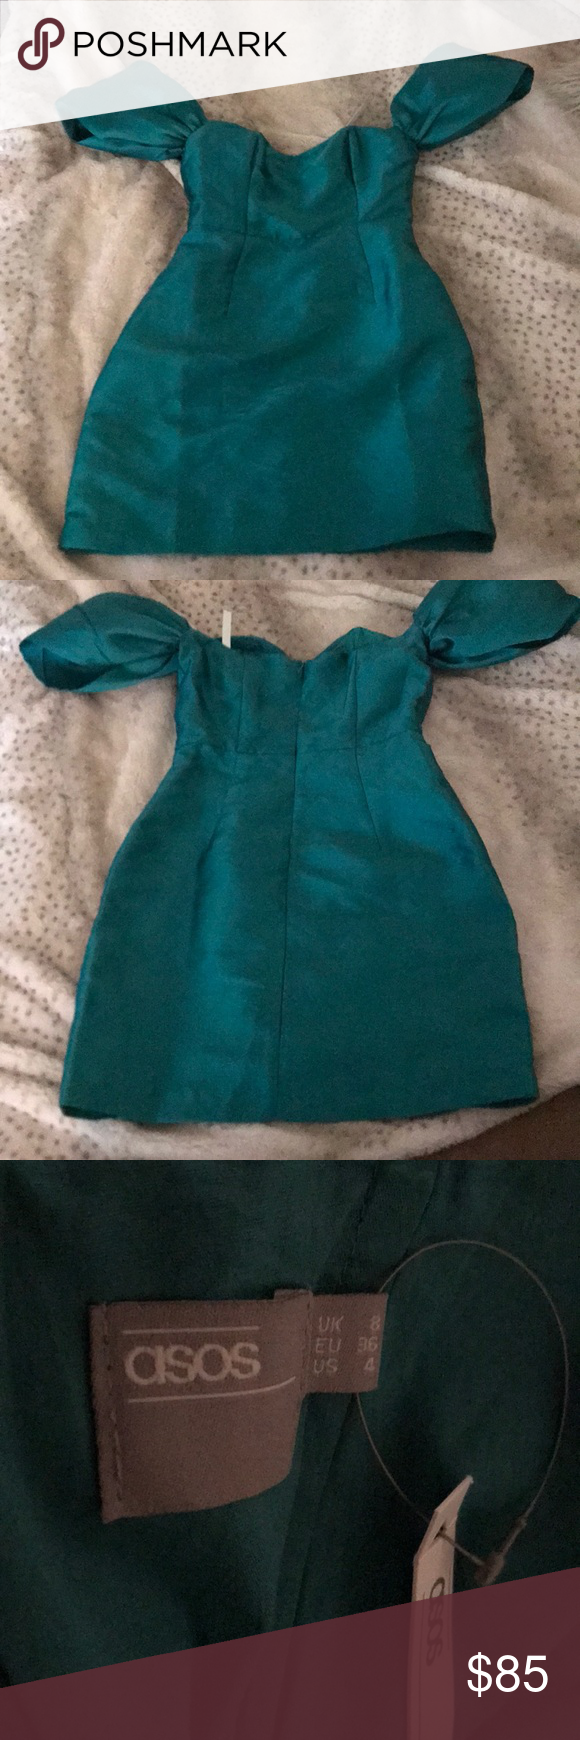 Asos emerald green evening or prom dress size nwt arm pits